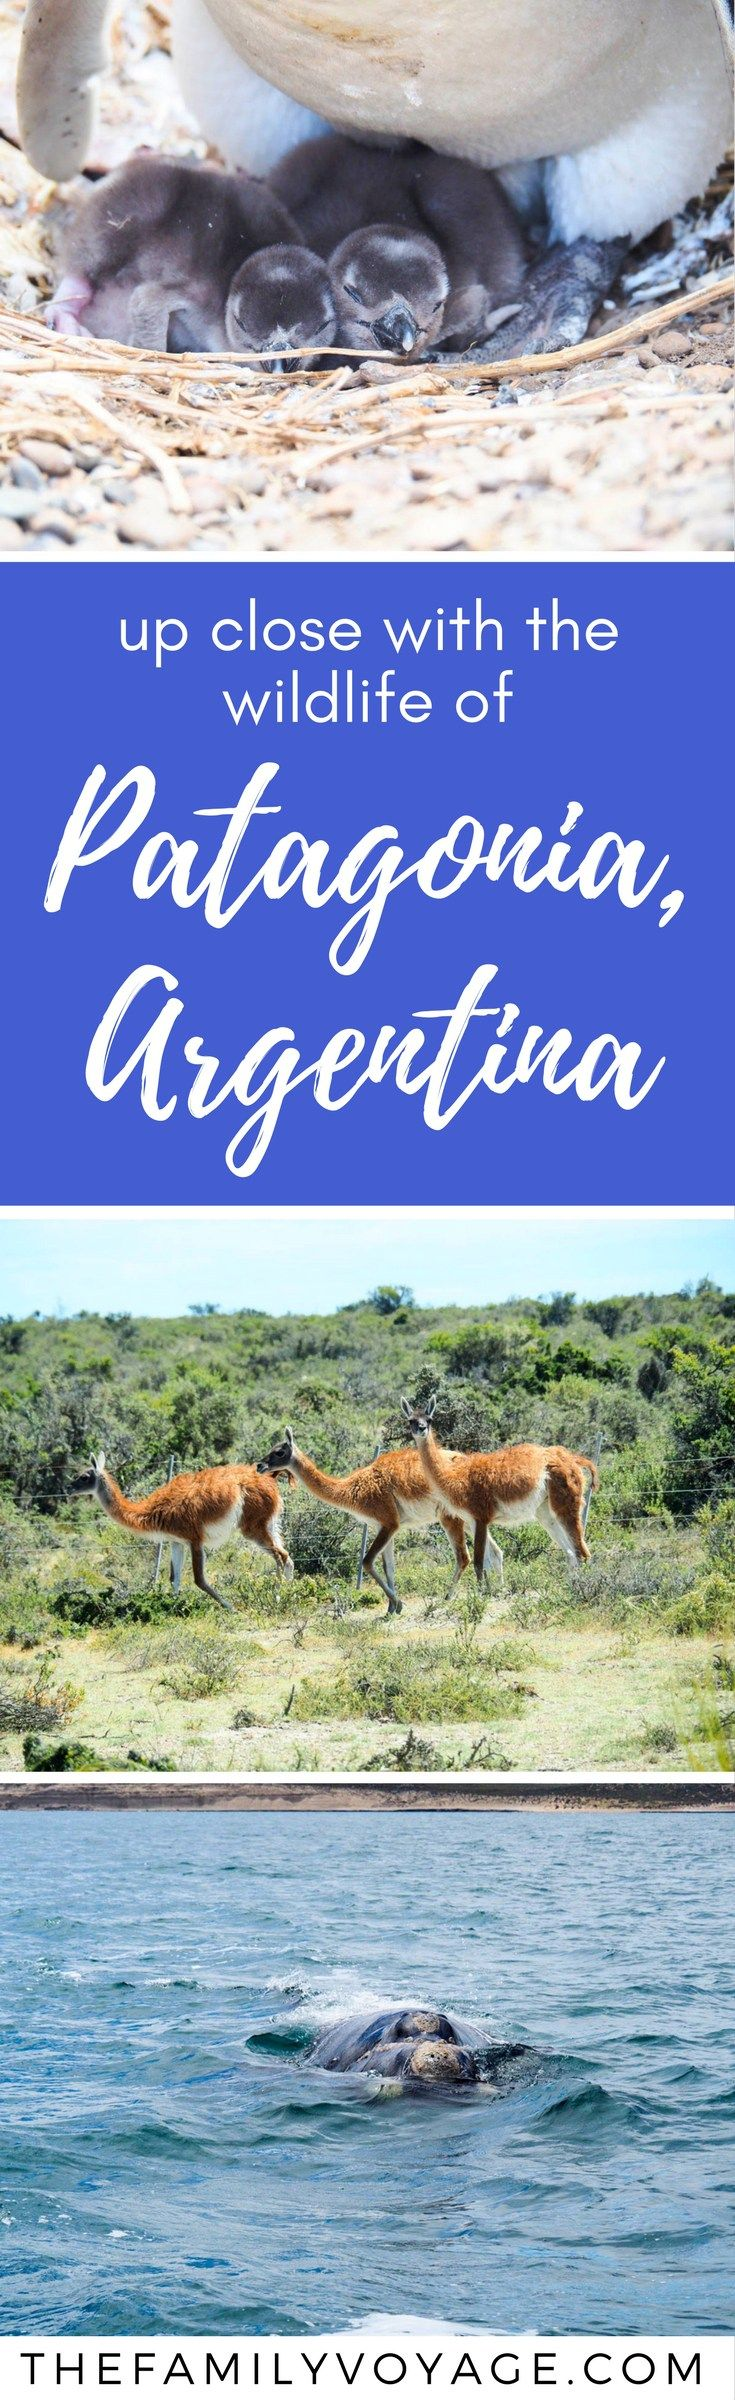 Are you trying to decide where to go in Argentina? Make sure to visit Puerto Madryn in northern Patagonia for an amazing wildlife tour! If you're wondering where to see penguins, this tour takes you to UNESCO Heritage Site Estancia San Lorenzo (even better than Punta Tombo!). You'll go whale watching, eat at a traditional estancia, walk with penguins and more in just one day. #Argentina #Patagonia #PuertoMadryn #wildlife #animals #travel #familytravel